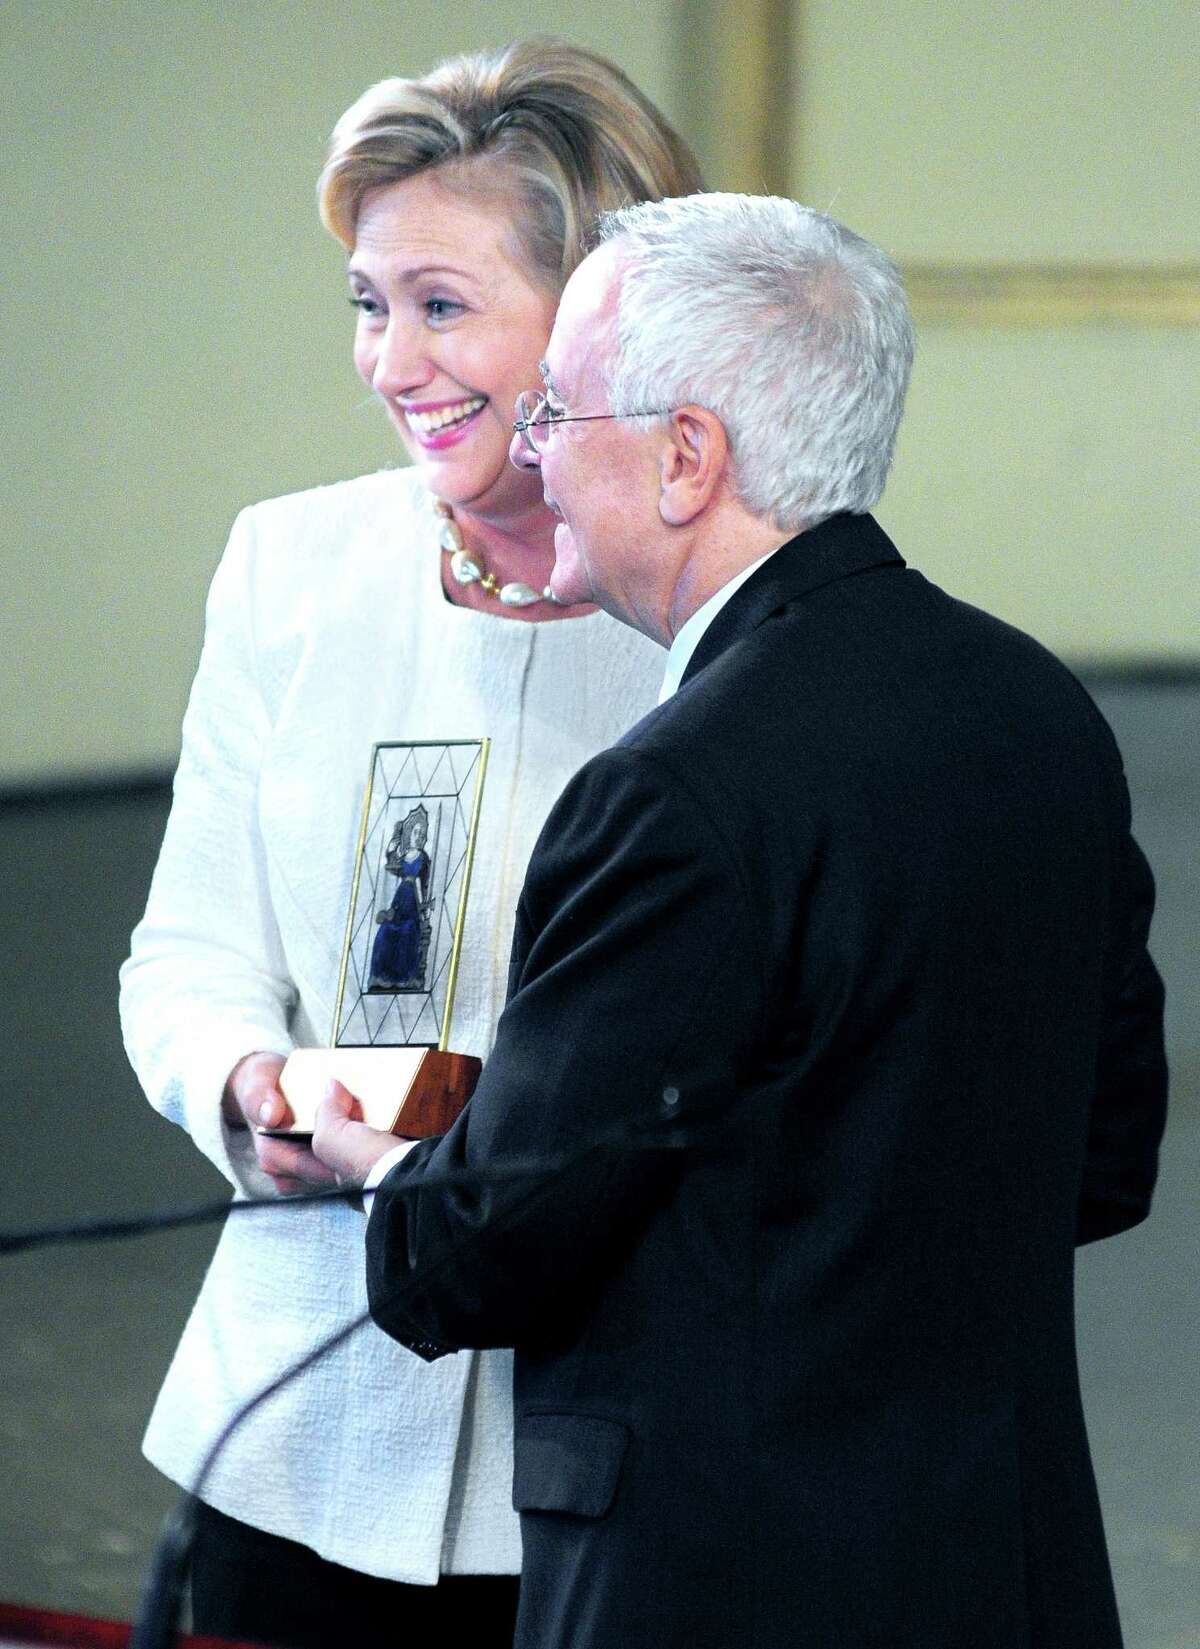 (Arnold Gold ?' New Haven Register) Hillary Clinton receives the Yale Law School Award of Merit from Yale Law School Dean Robert Post during her 40th Yale Law School reunion in New Haven on 10/5/2013.